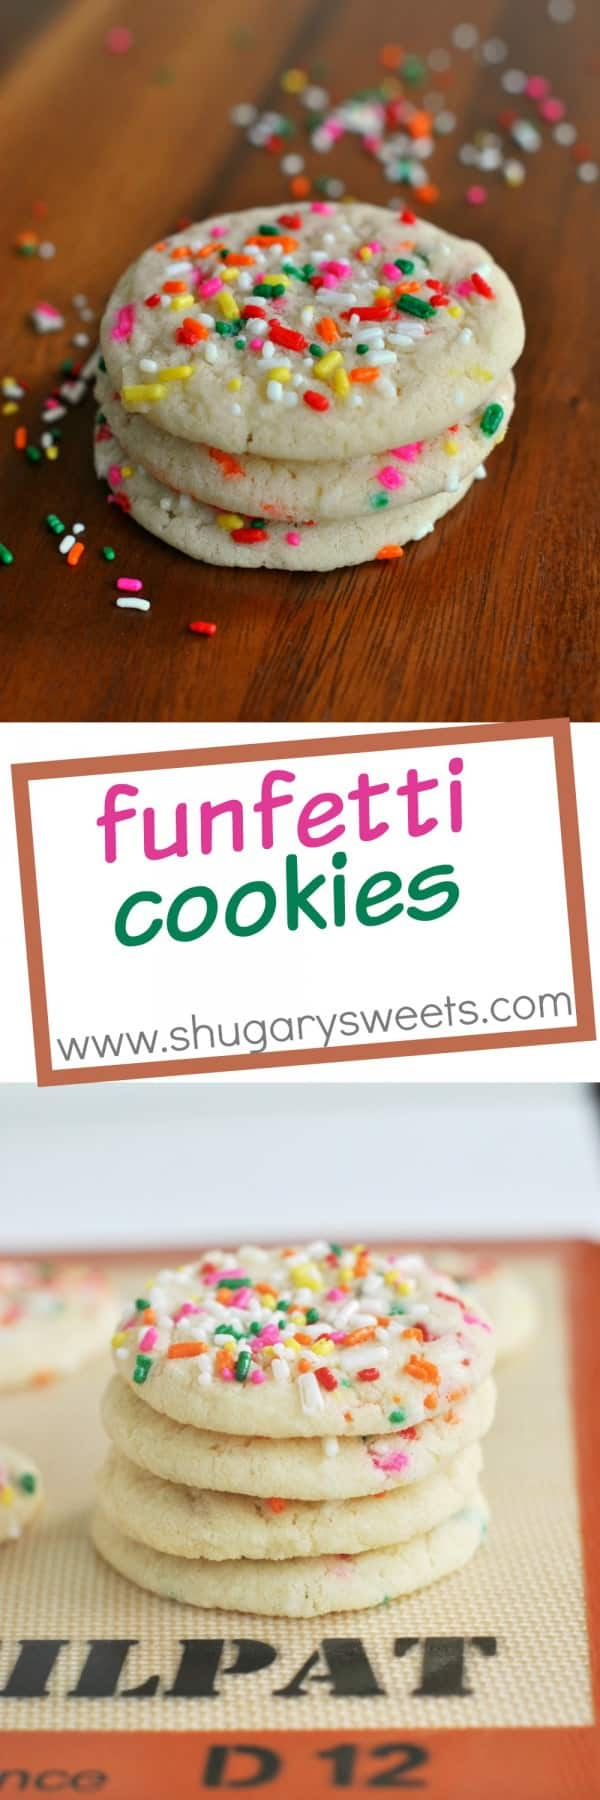 Funfetti Cookies: from scratch, soft and chewy sugar cookies filled with sprinkles